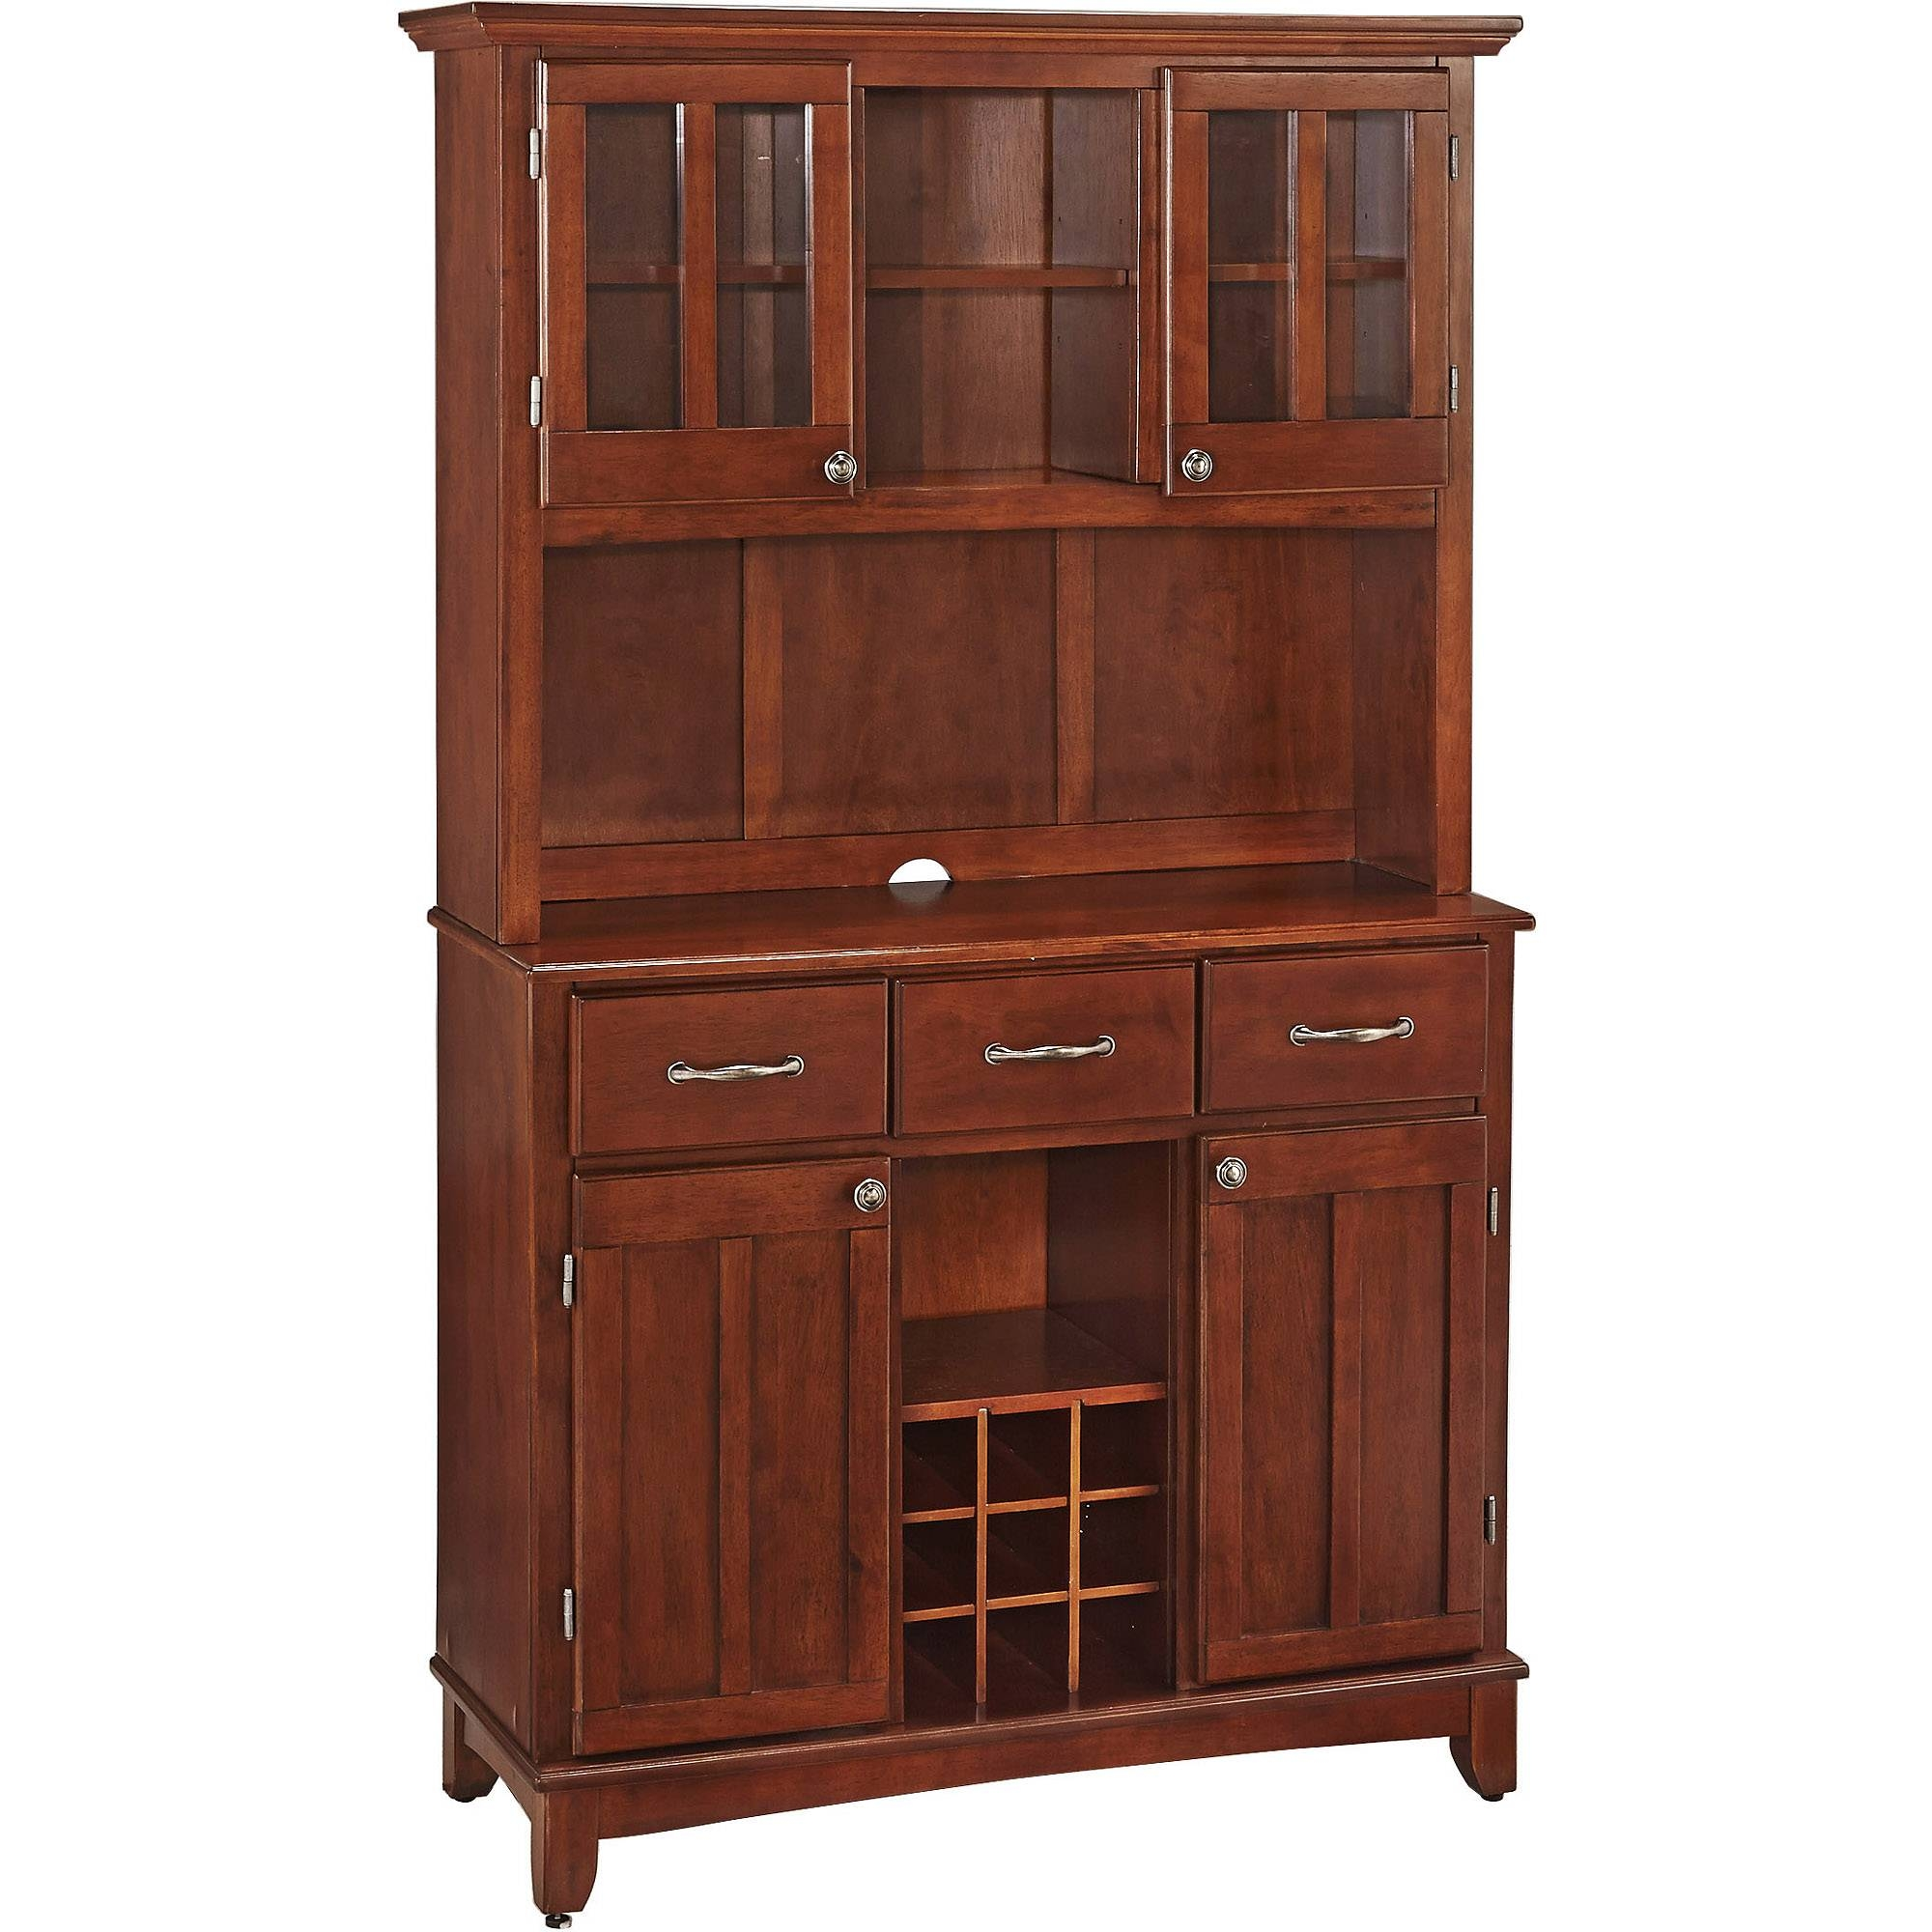 China Cabinets - Walmart intended for Shallow Sideboard Cabinets (Image 13 of 30)